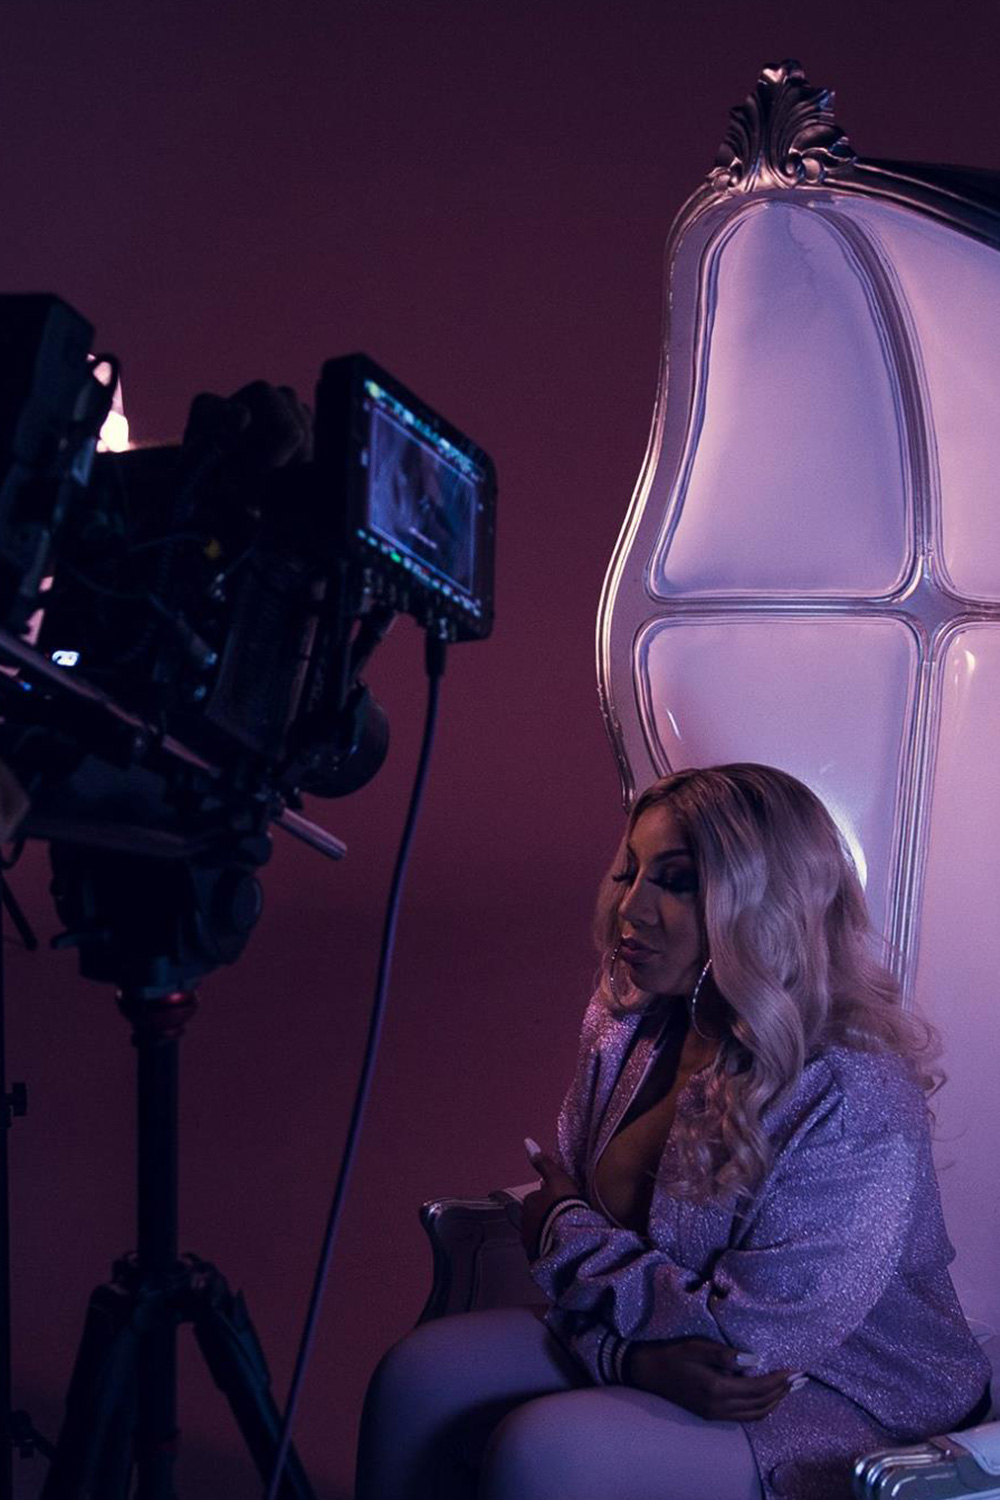 photo de liza monet en tournage de clip studio